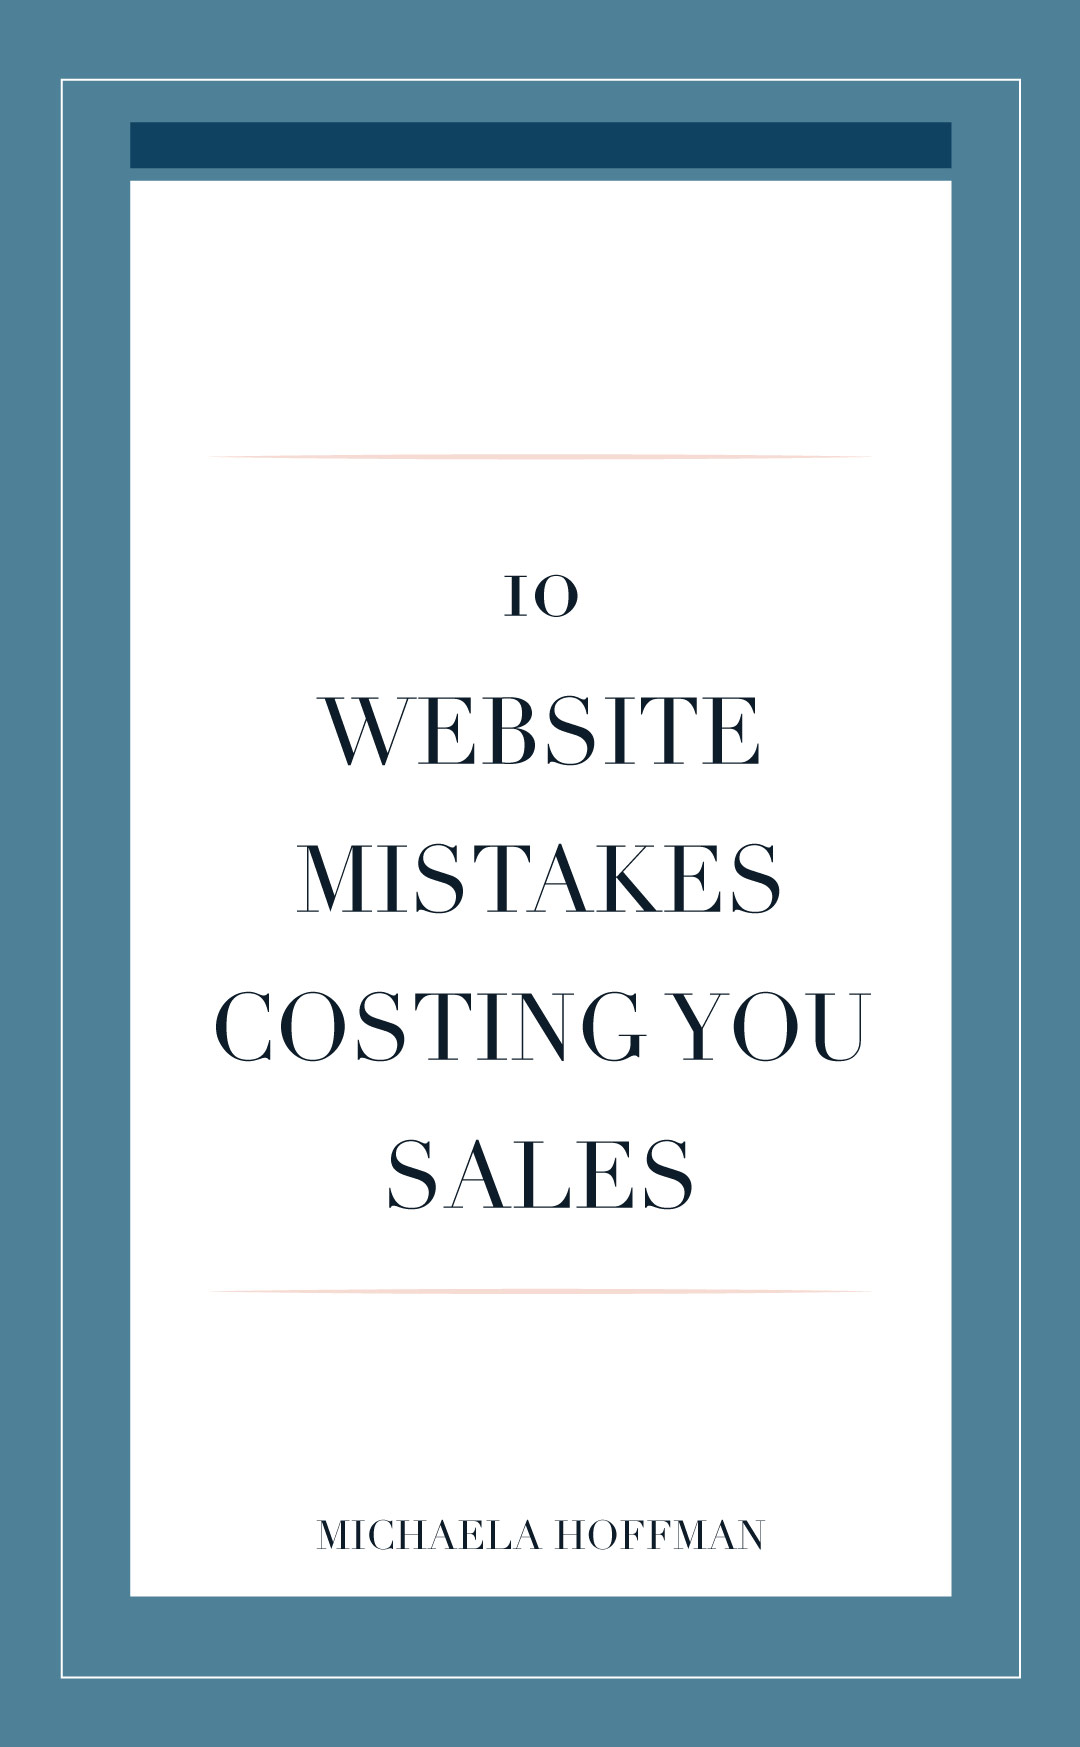 10 Reasons you are missing sales on your website